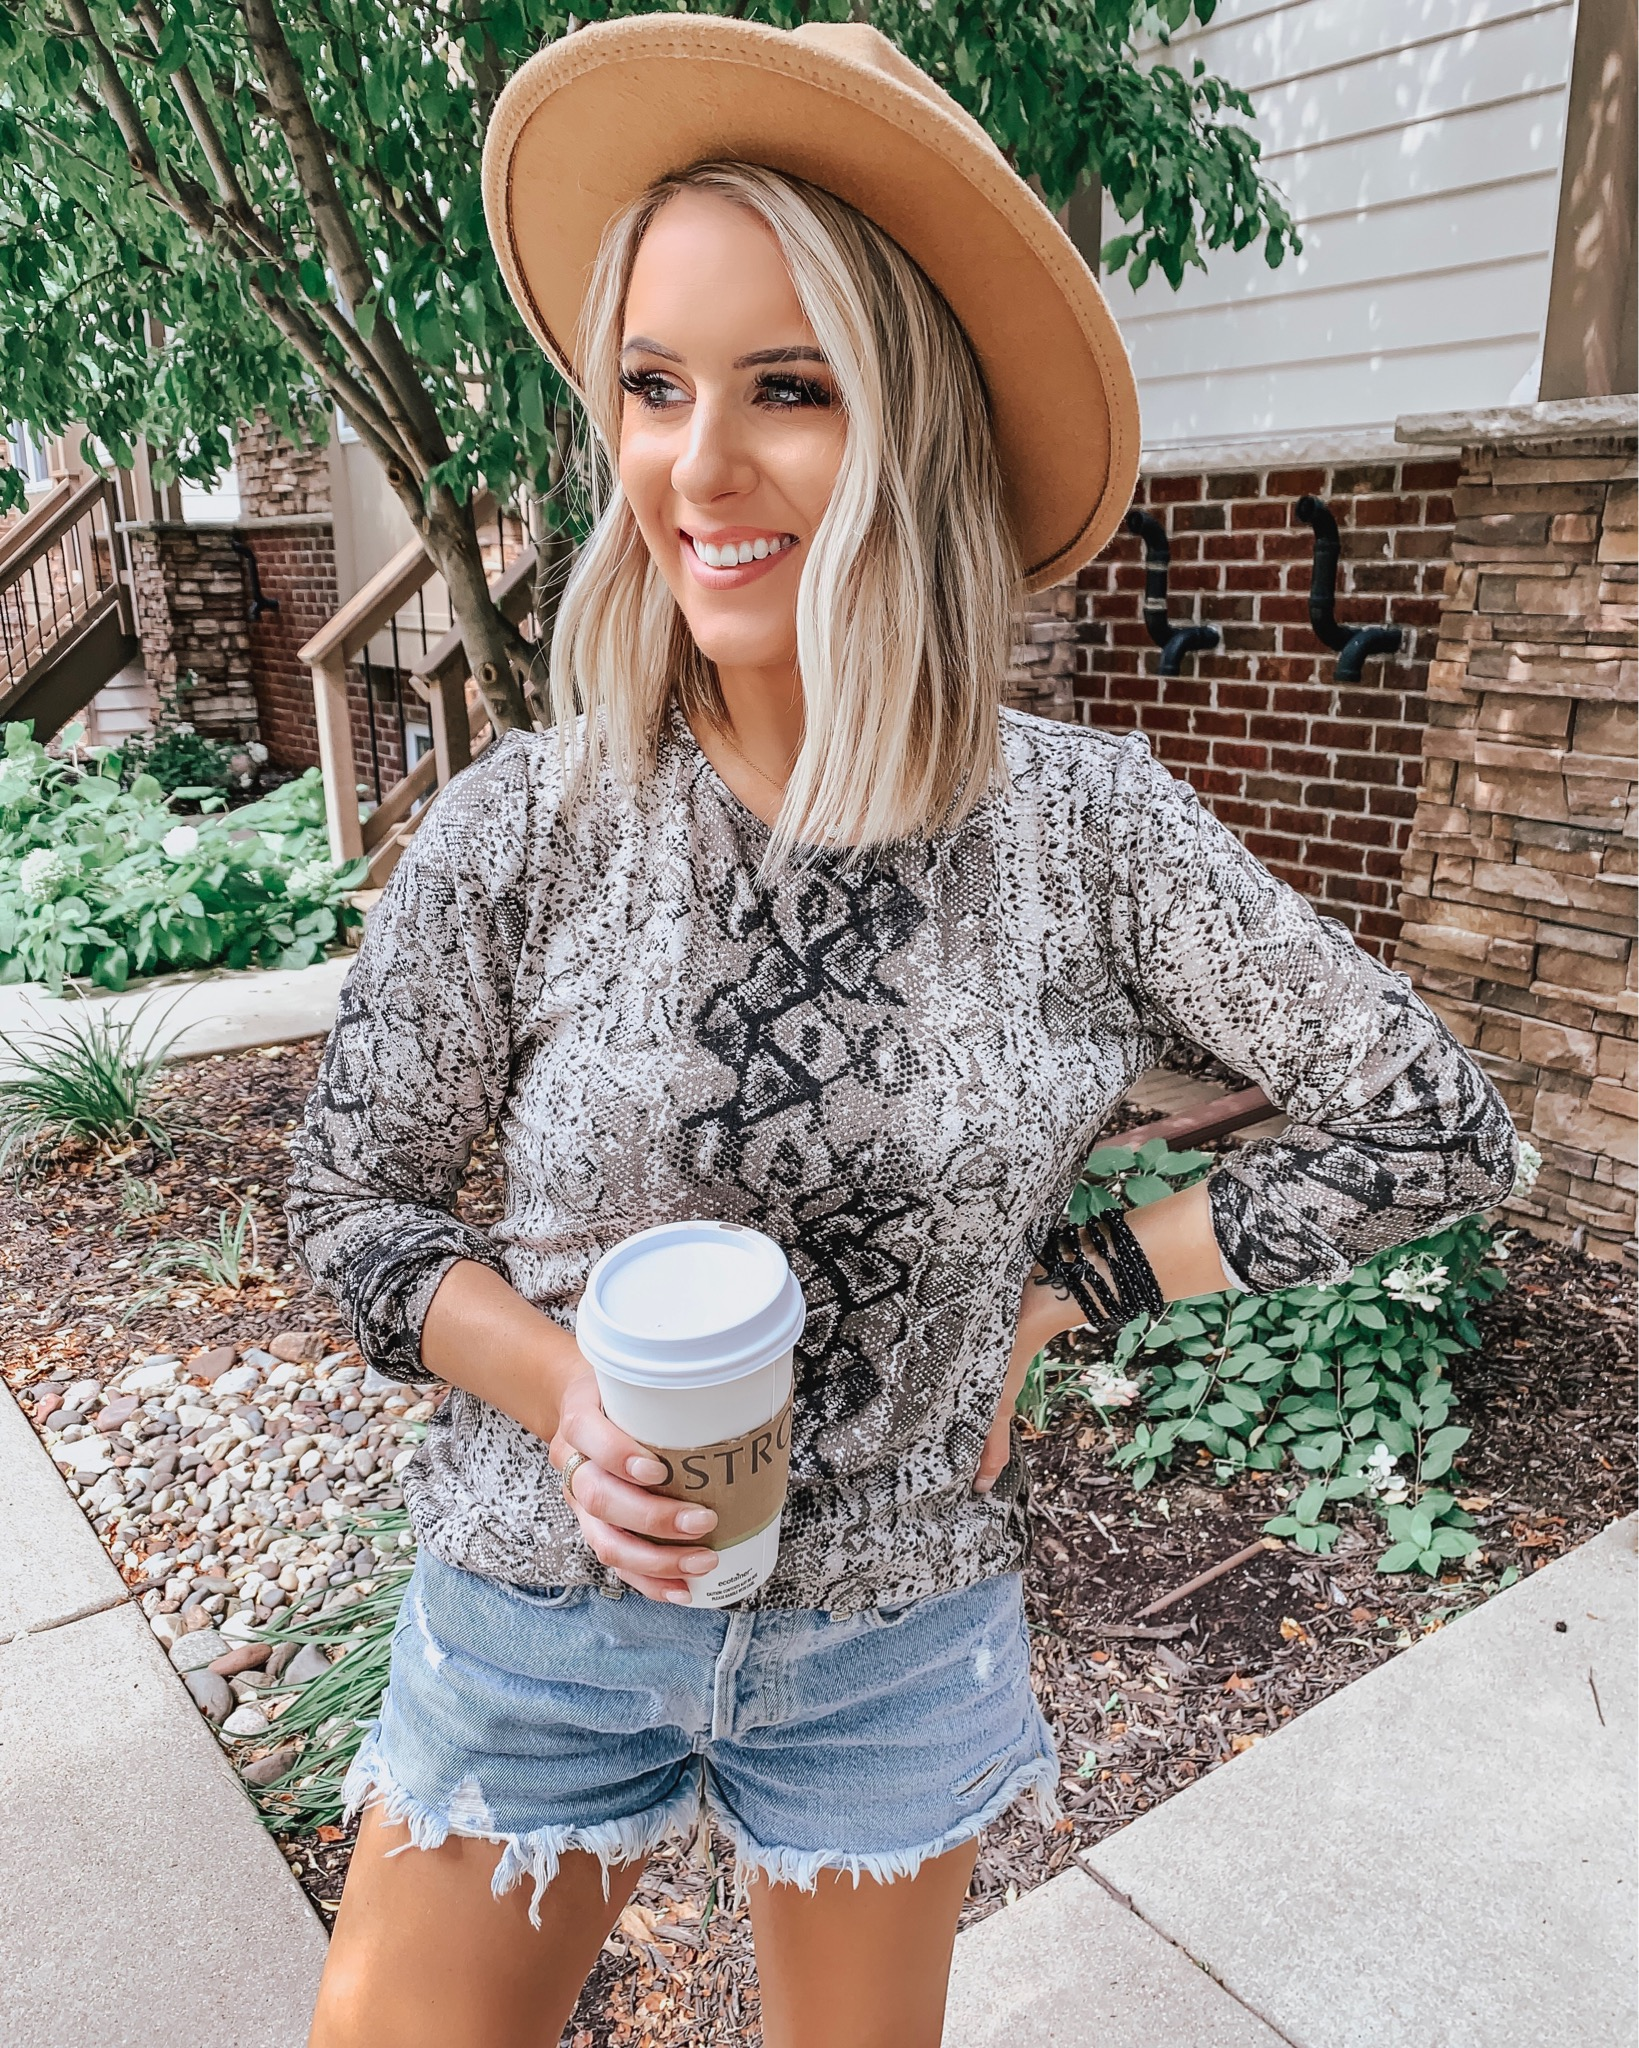 Victoria Emerson Labor Day Sale | Style Blogger Lauren Meyer shares Victoria Emerson Labor Day Sale